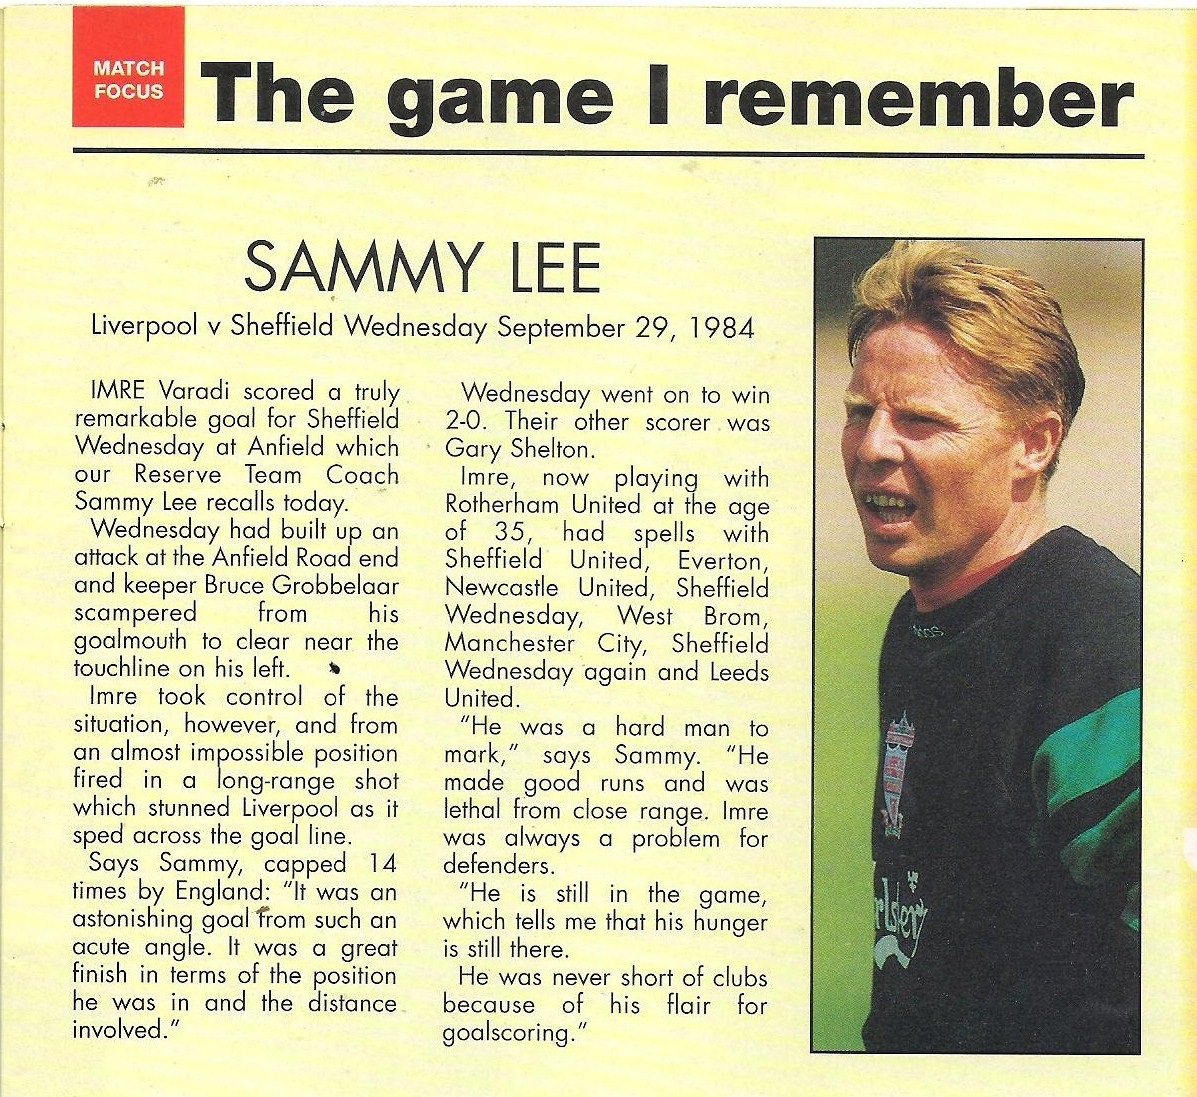 The game I remember - Sammy Lee